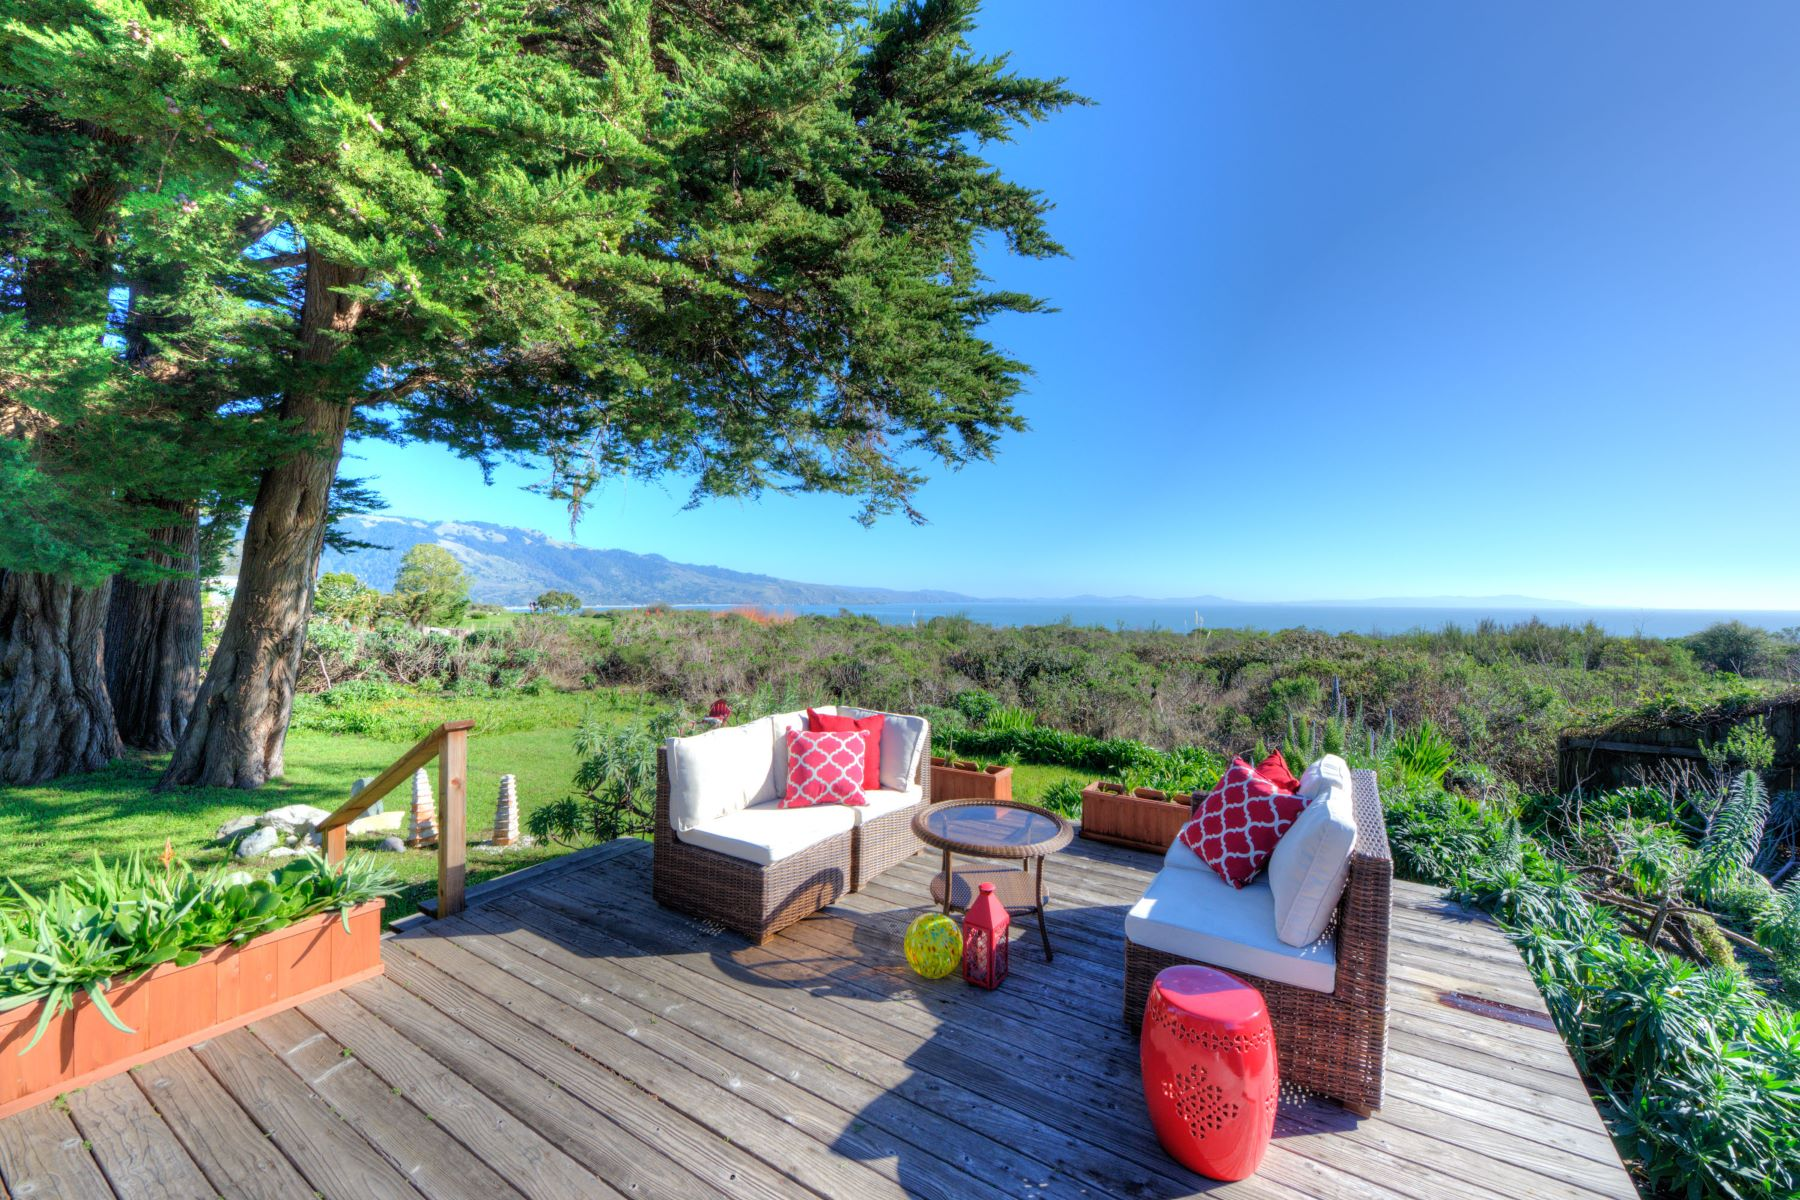 Single Family Home for Sale at It's All About the View 125 Dogwood Road Bolinas, California 94924 United States